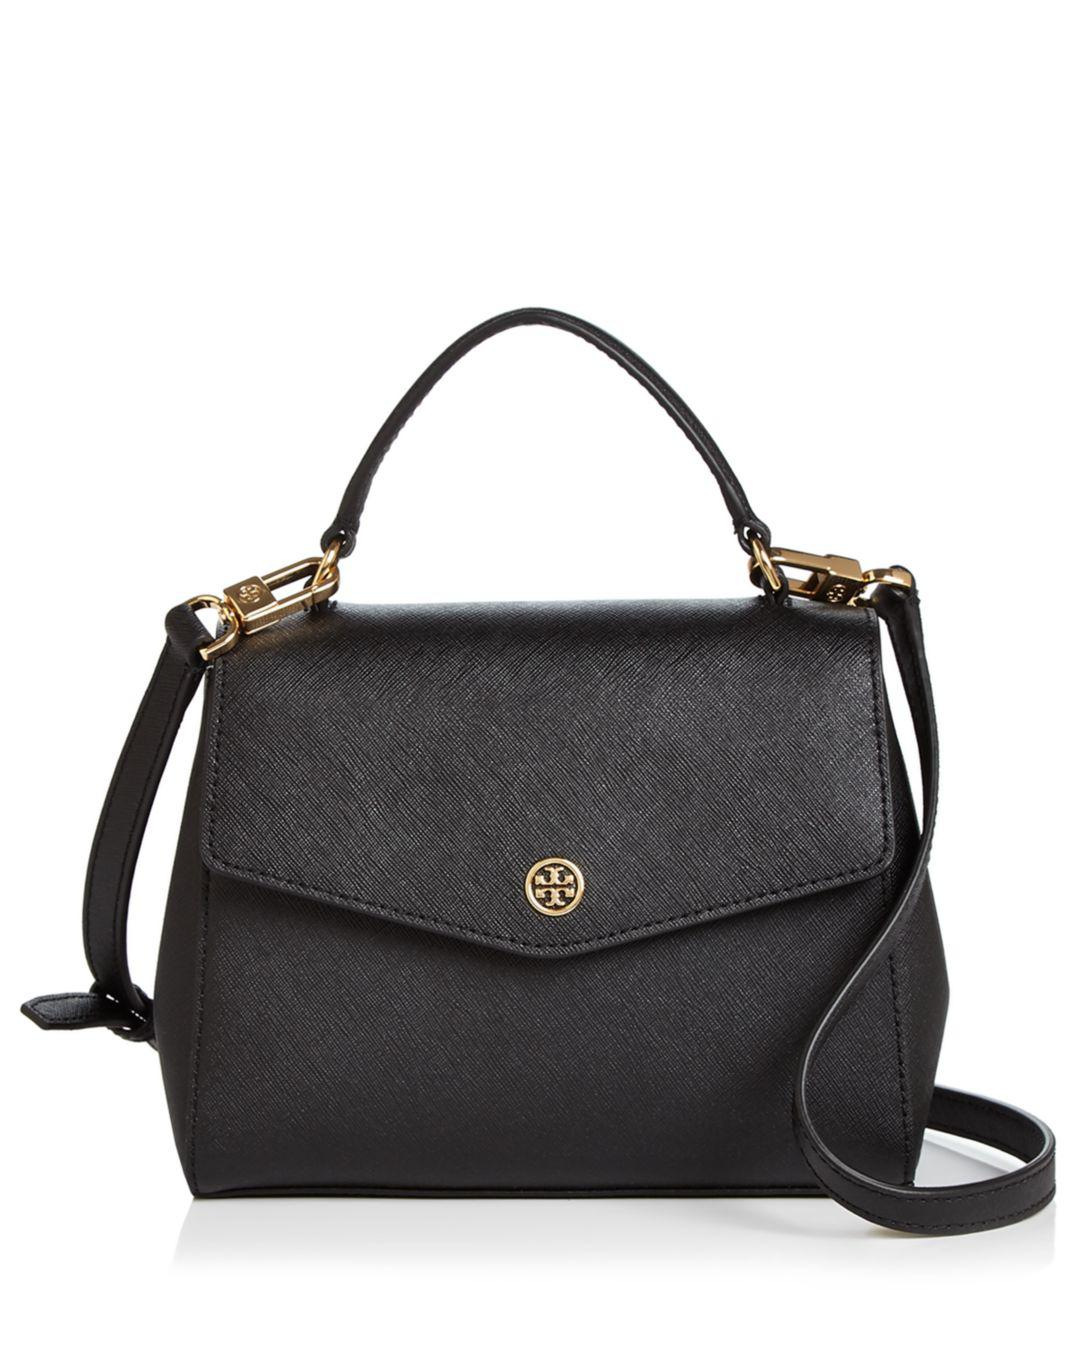 6715d888c0d Lyst - Tory Burch Robinson Small Leather Crossbody in Black